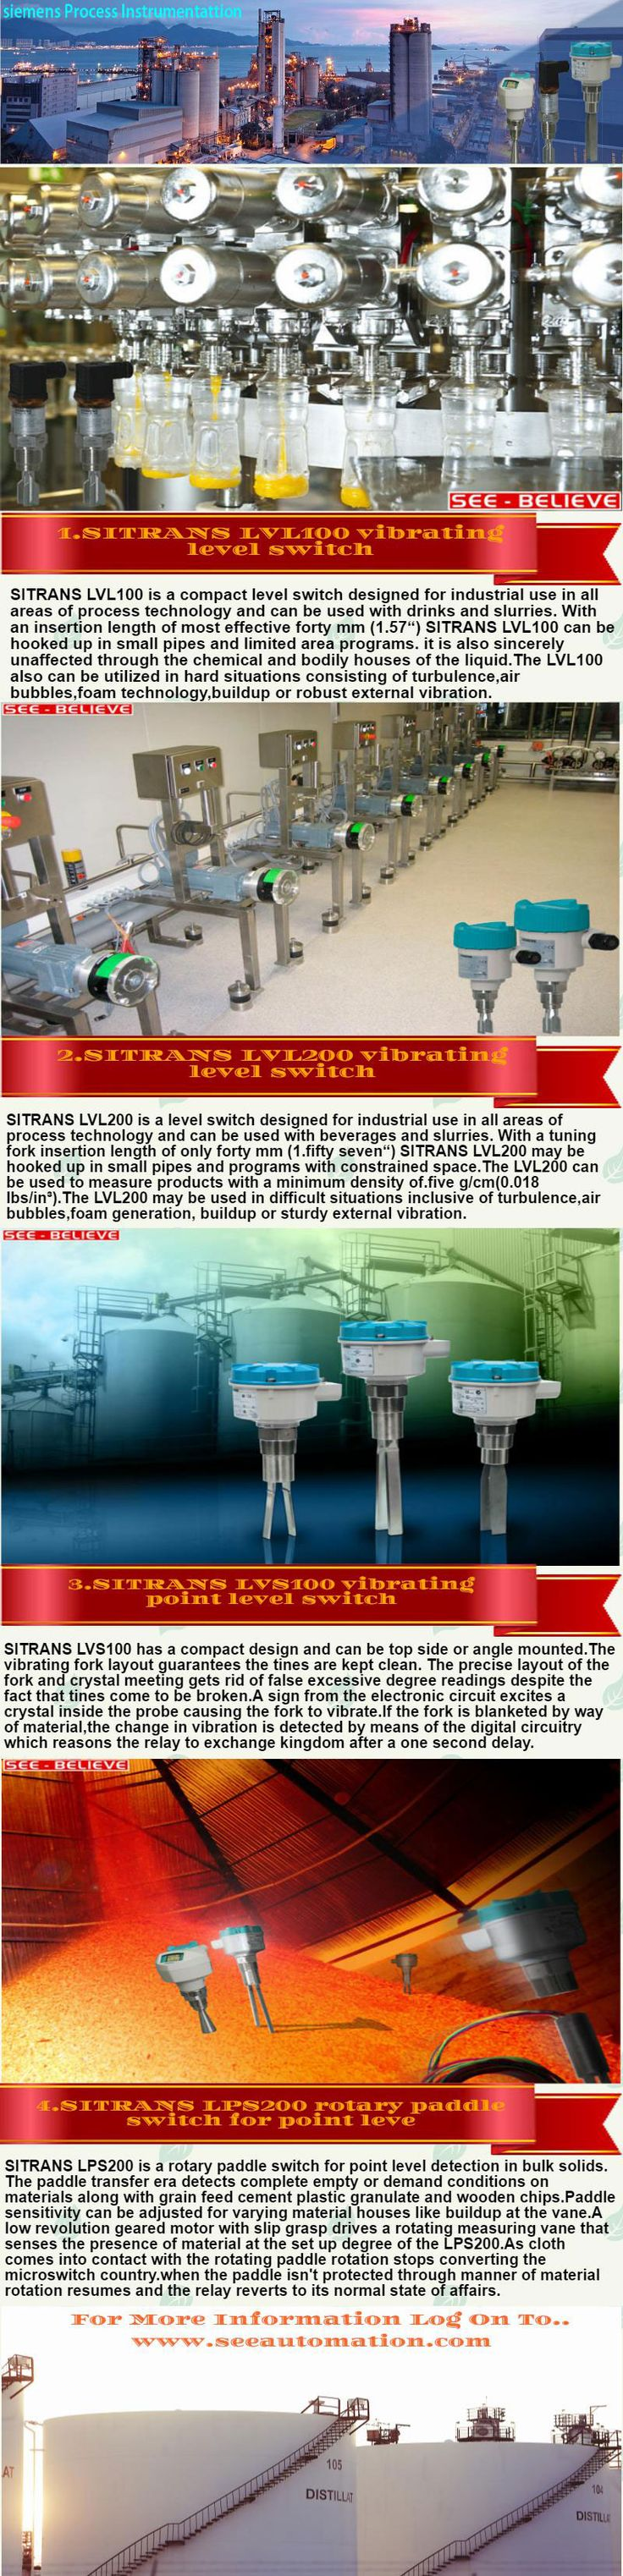 """SITRANS LVL200 is a level switch designed for industrial use in all areas of process technology and can be used with drinks and slurries.With a tuning fork insertion duration of best 40 mm (1.57"""").SITRANS LVL200 may be installed in small pipes and applications with limited space."""